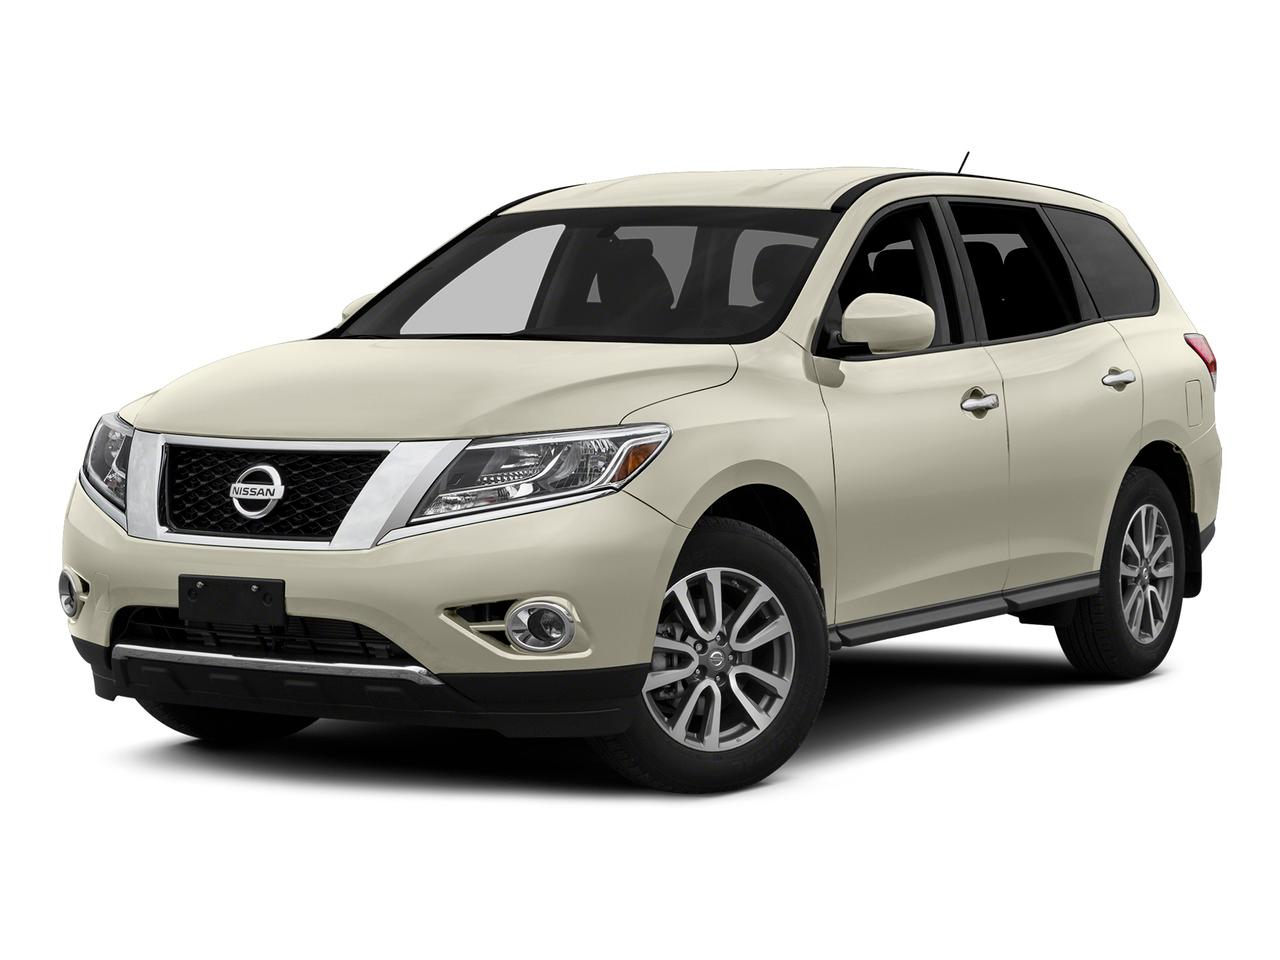 2015 Nissan Pathfinder Vehicle Photo in Shreveport, LA 71105